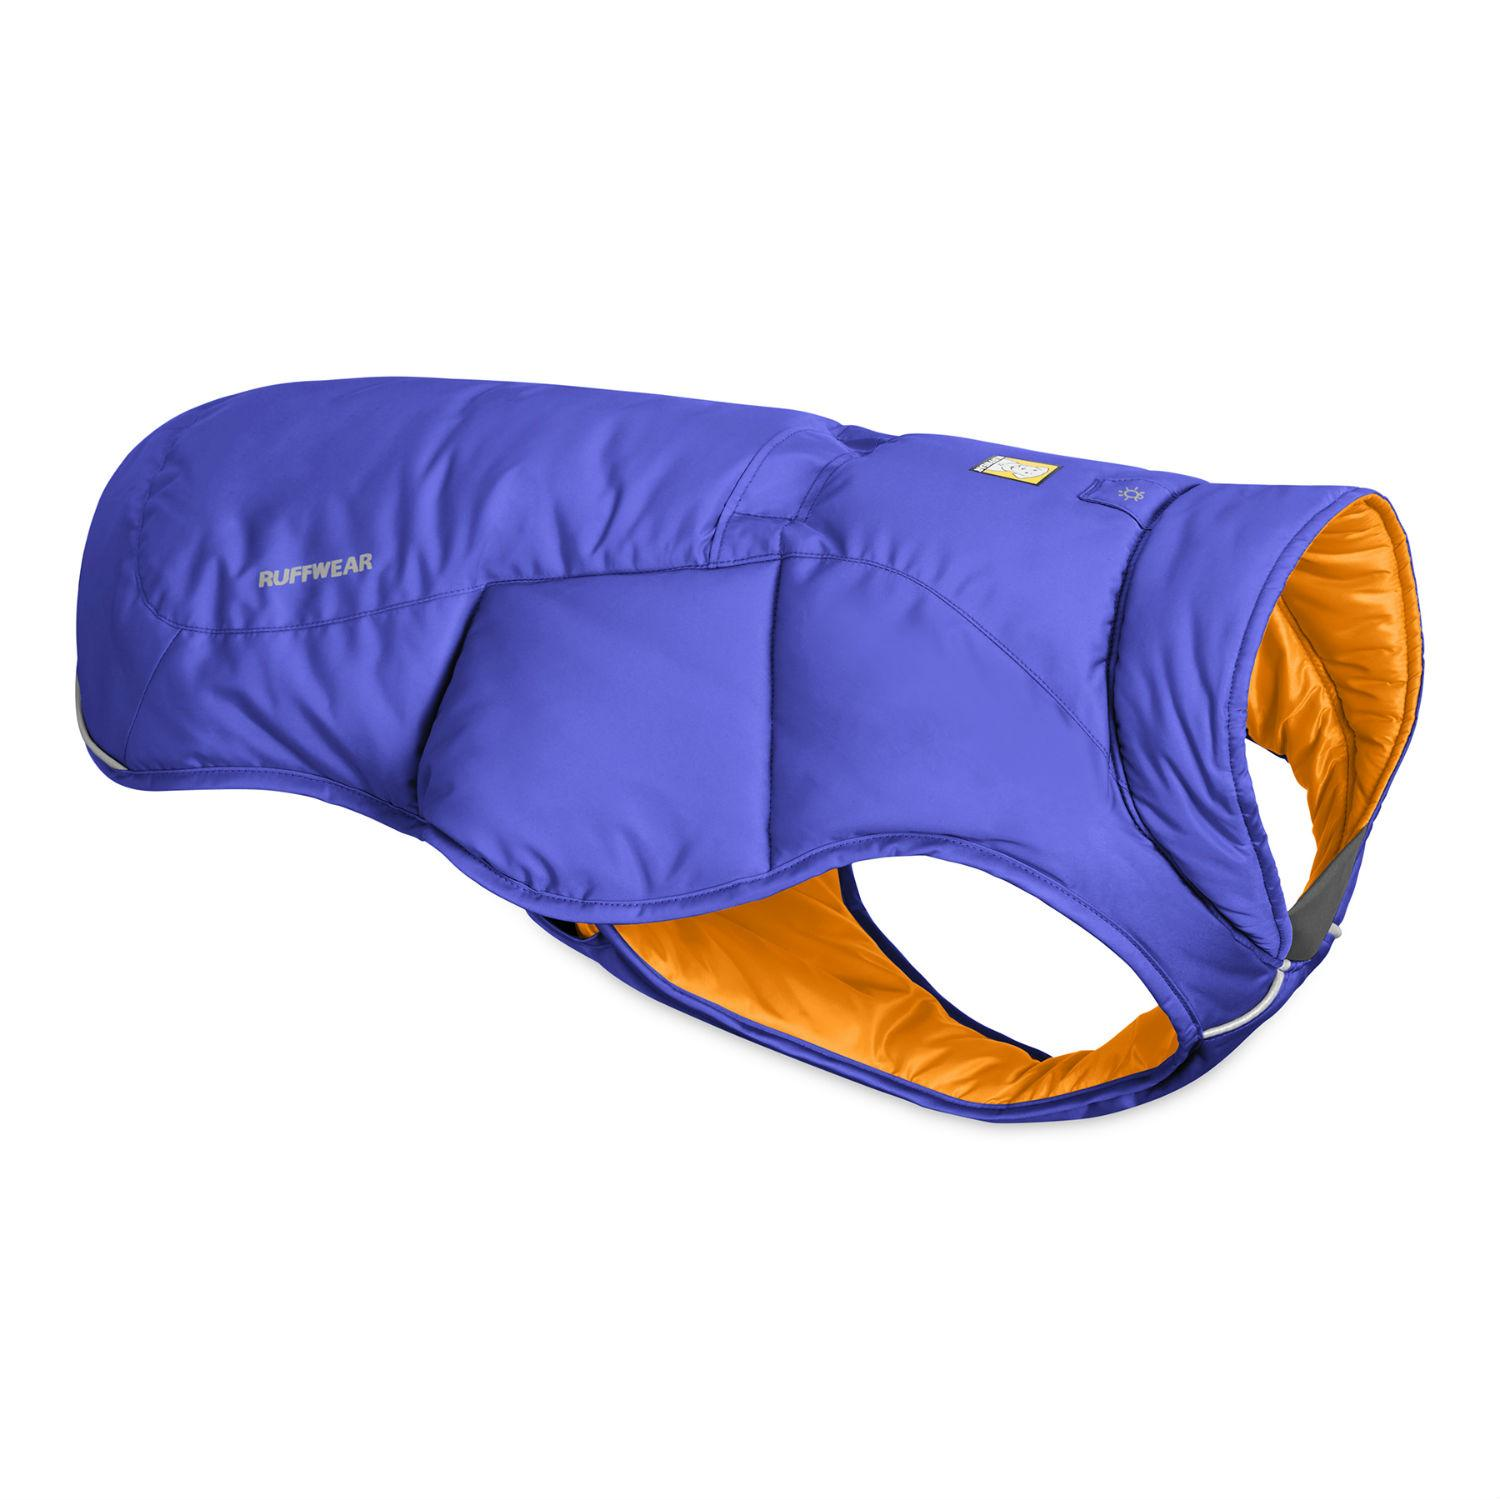 Quinzee  Insulated Dog Jacket by RuffWear - Huckleberry Blue